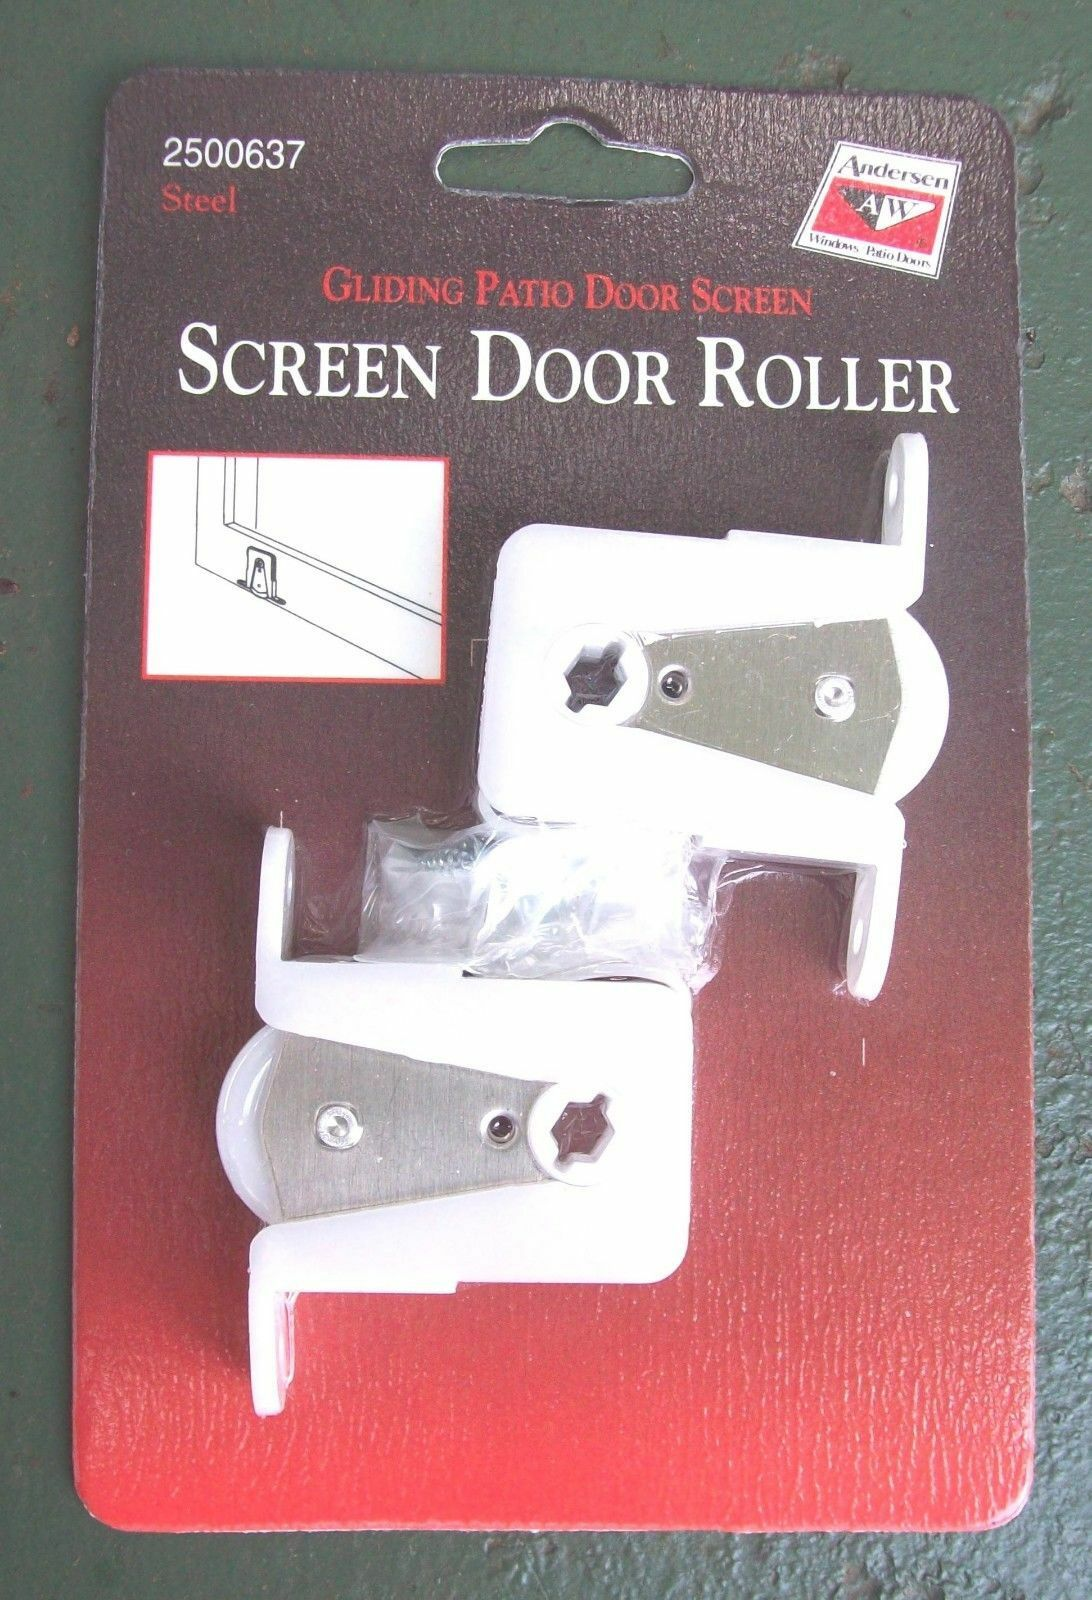 Andersen Screen Door Rollers Gliding Patio Door Screen 1 Pai